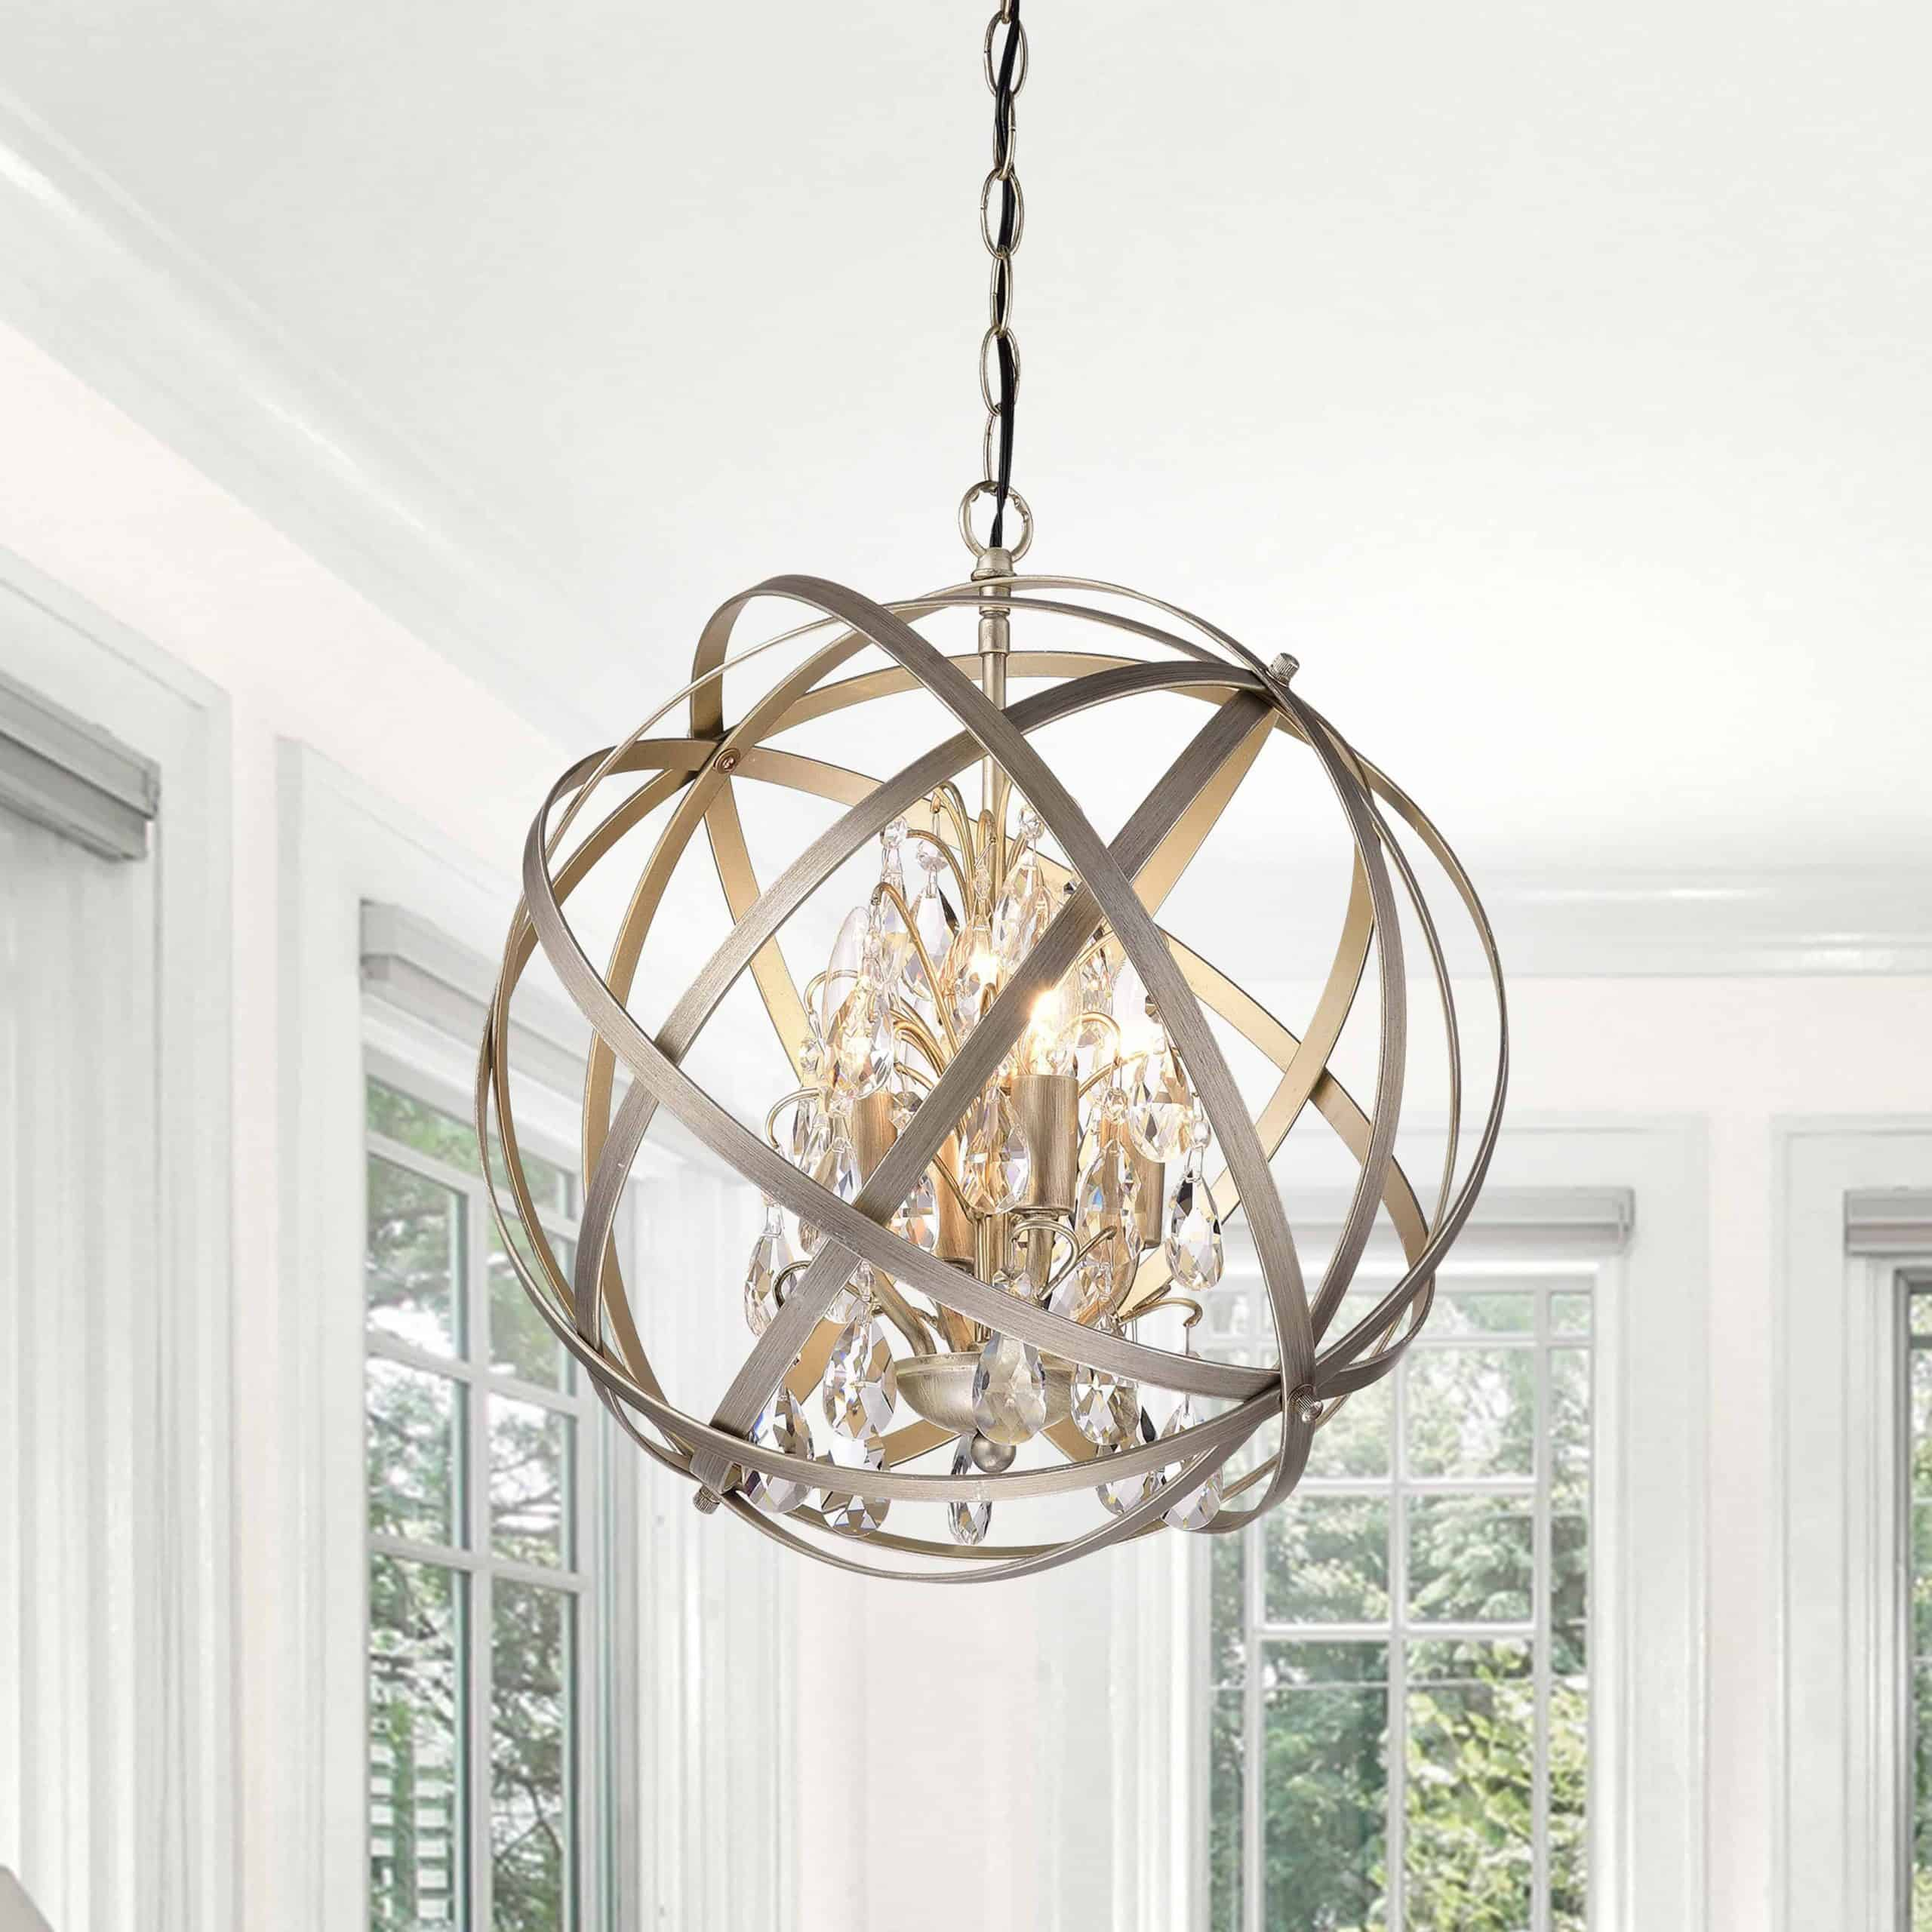 Benita-Antique-Copper-4-light-Metal-Globe-Crystal-Chandelier-5499630b-926e-4a1e-a1c3-1e32c5e8df2d